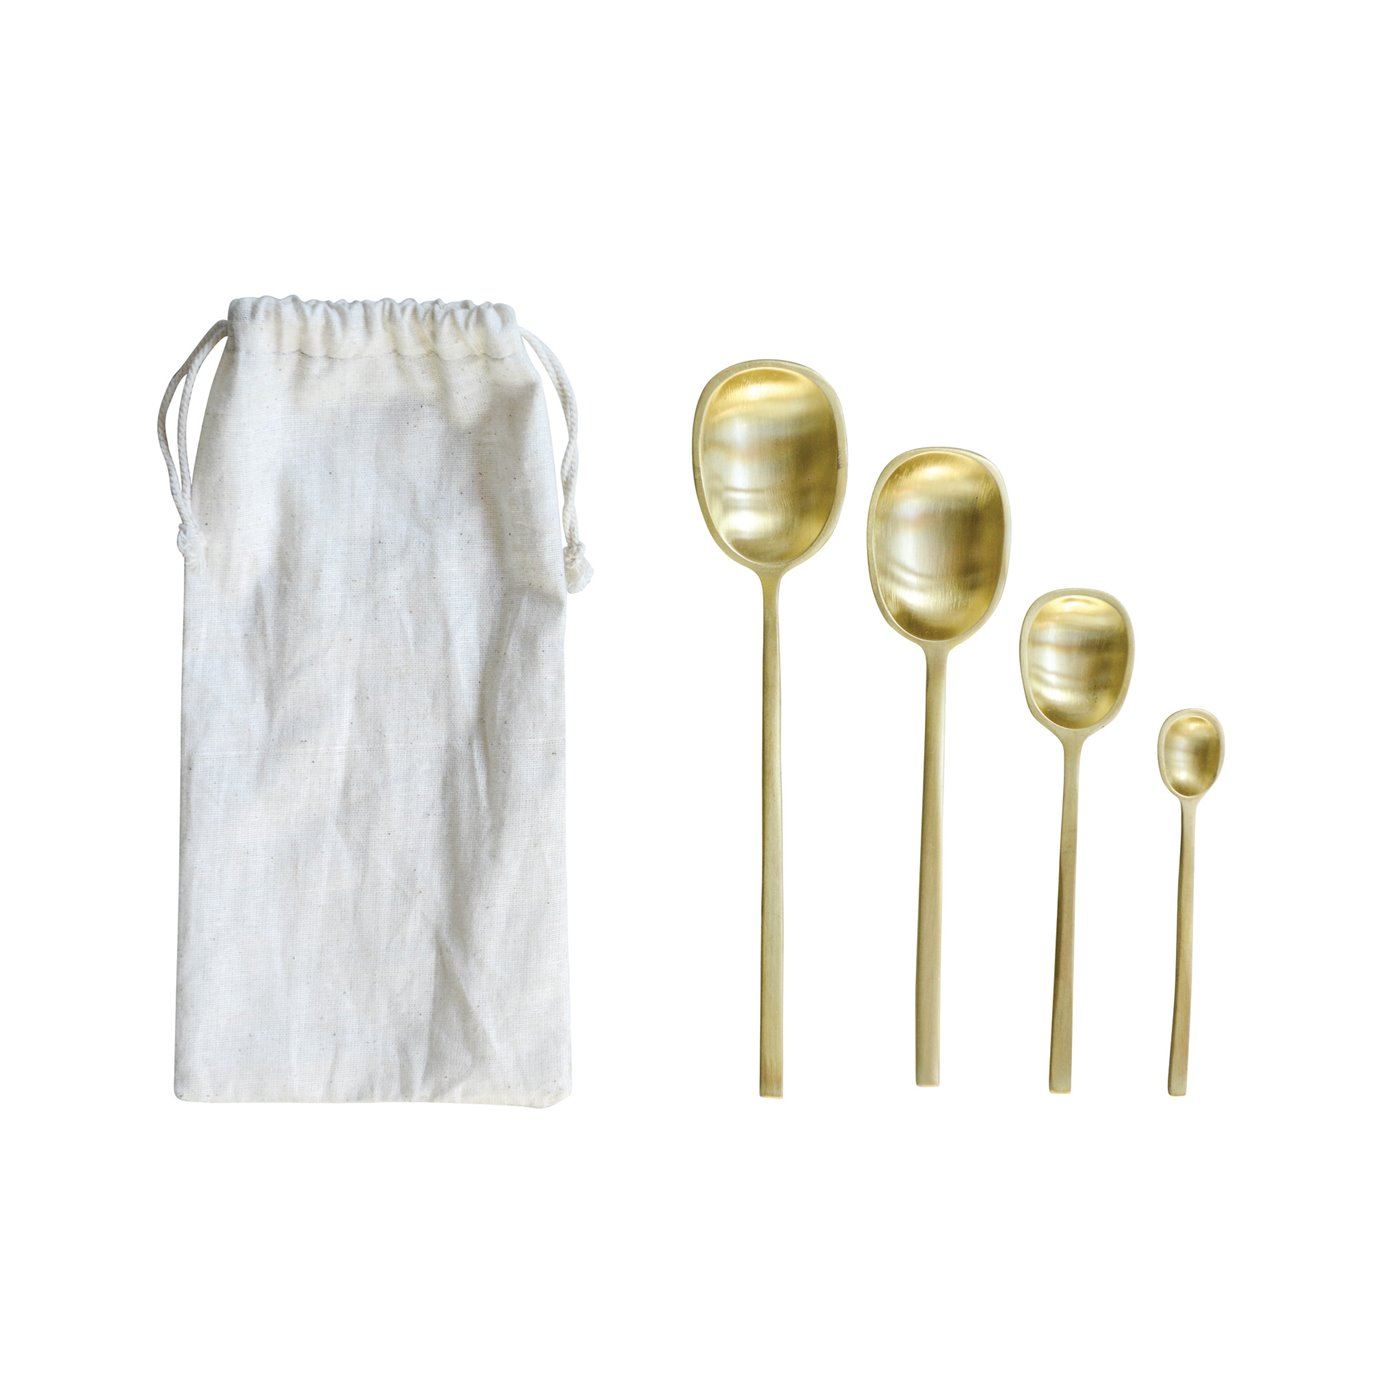 Brass Spoons with Drawstring Bag (Set of 4 Sizes)